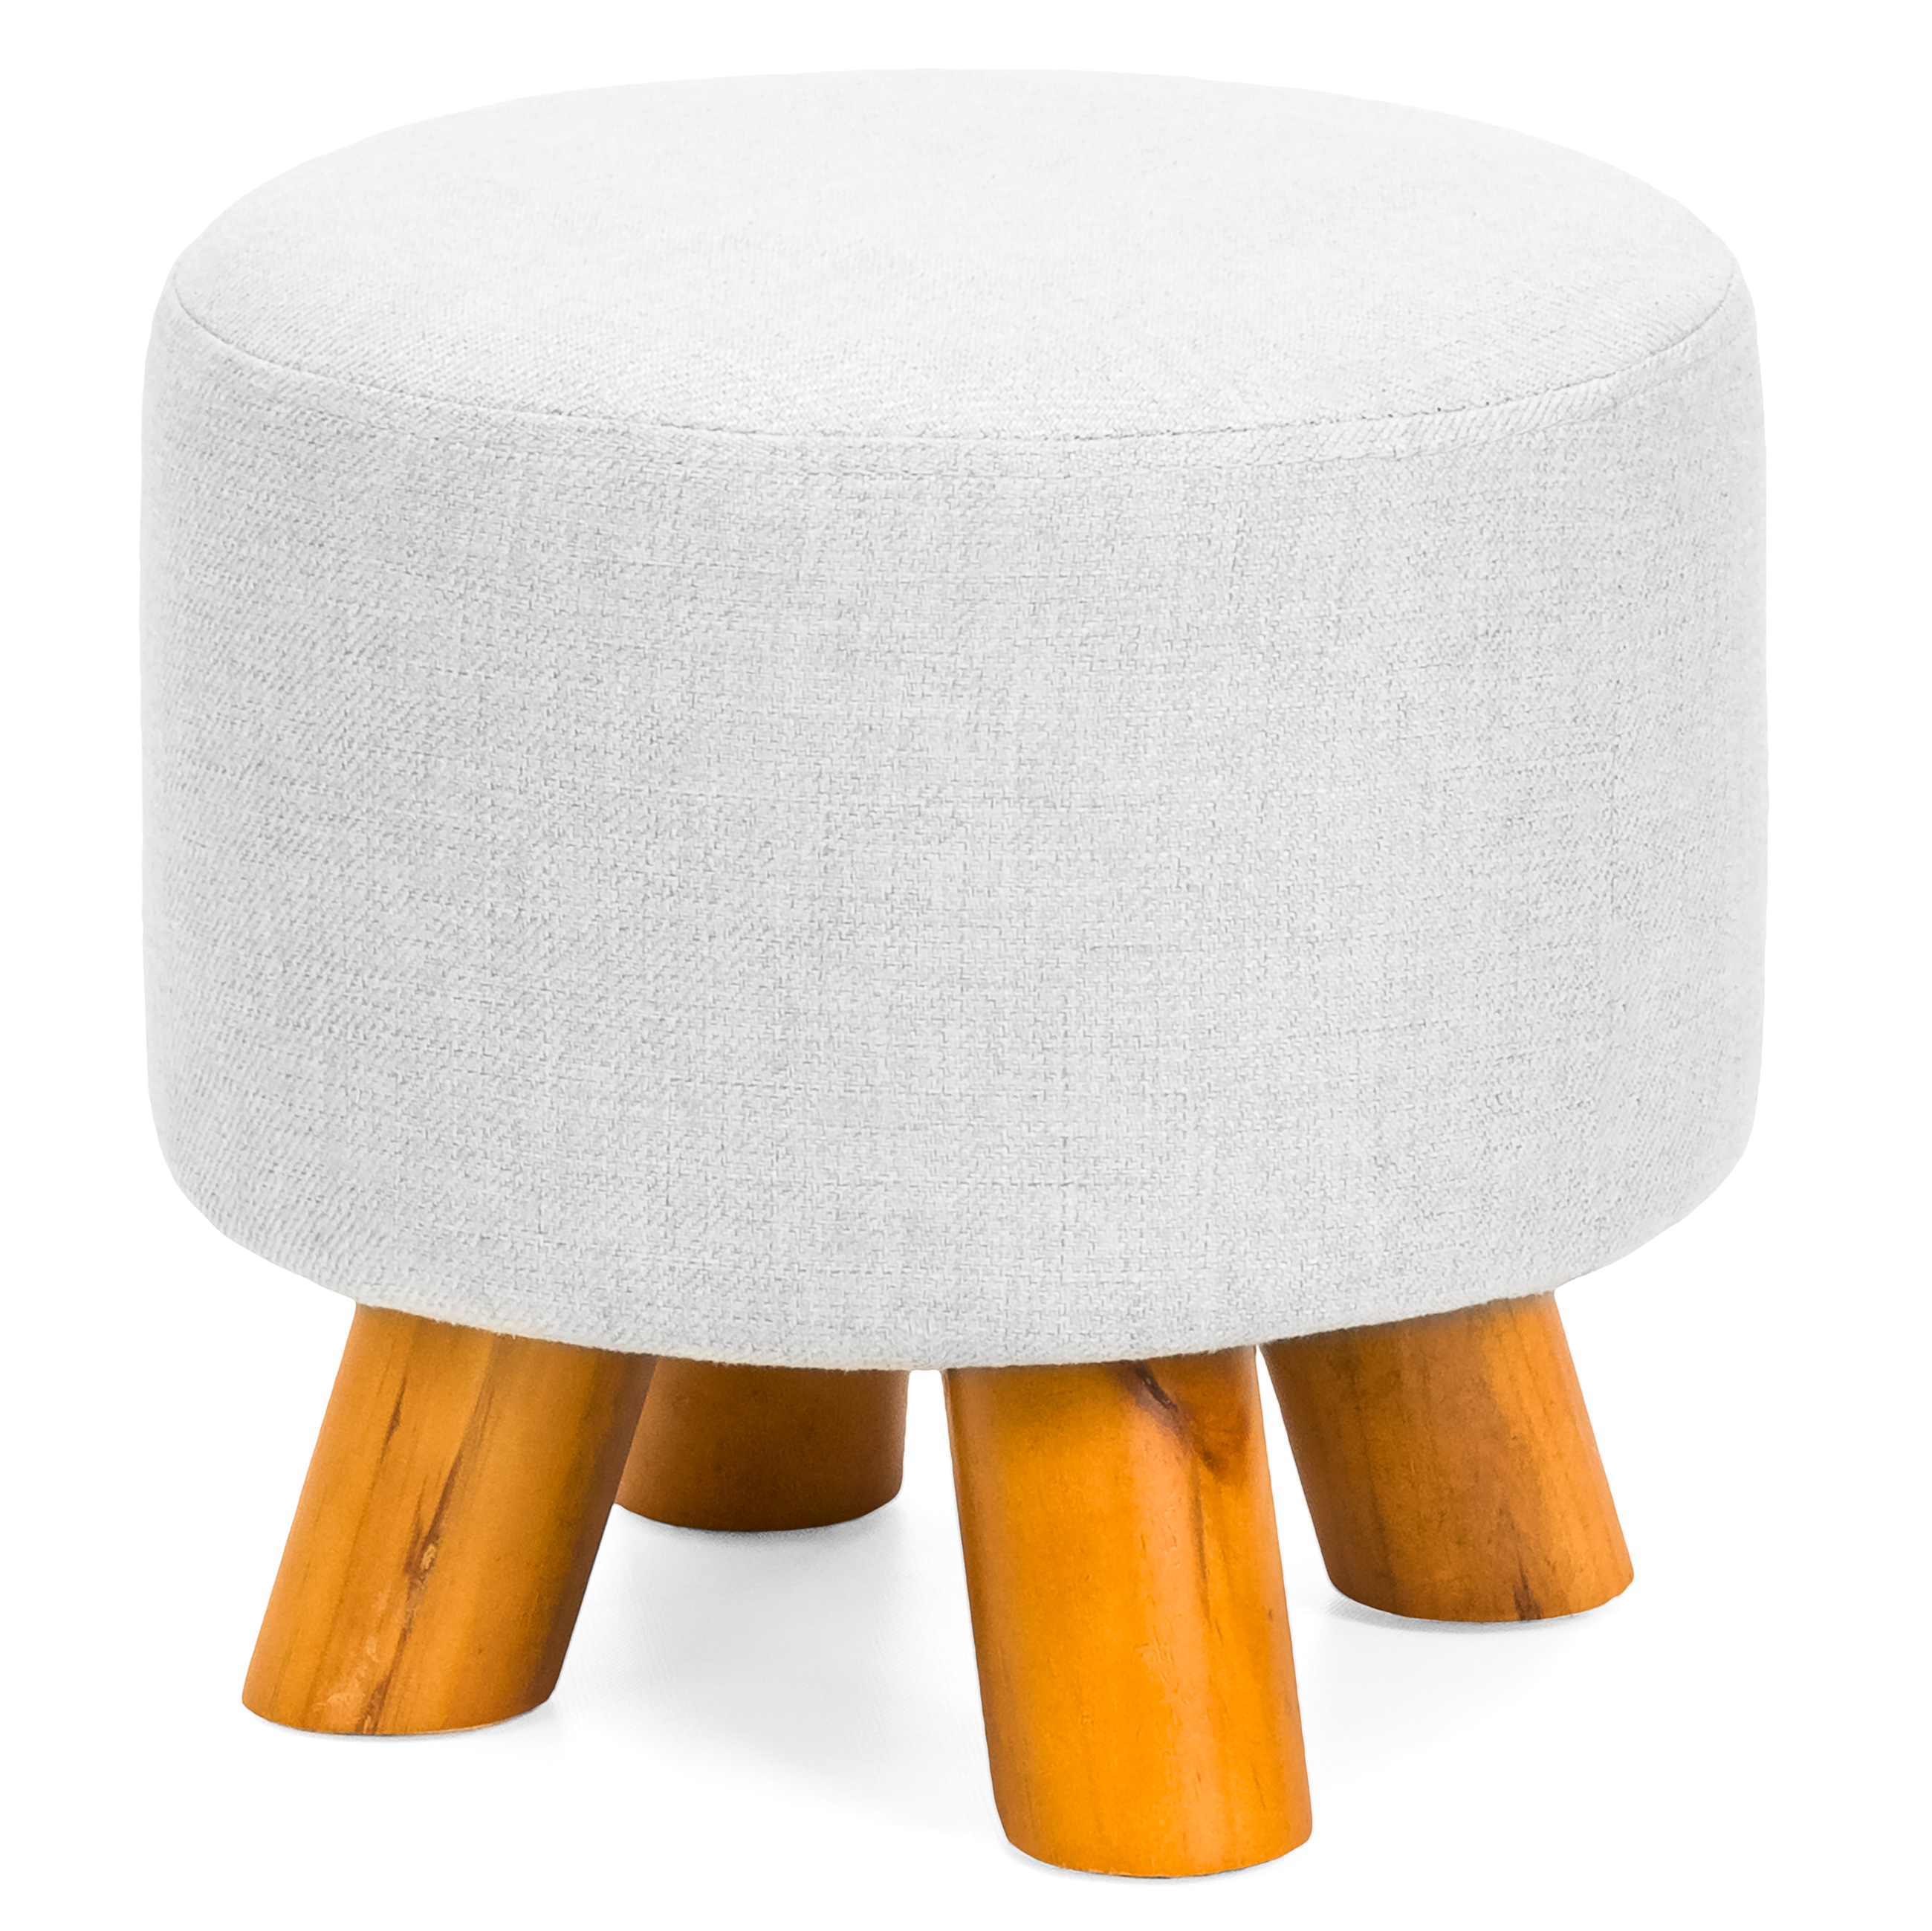 Best Choice Products Upholstered Padded Lightweight Pouf Ottoman Footrest Stool w/ Removable Linen Cover, Non-Skid Wooden Legs, 440lbs Weight Capacity - Light Gray